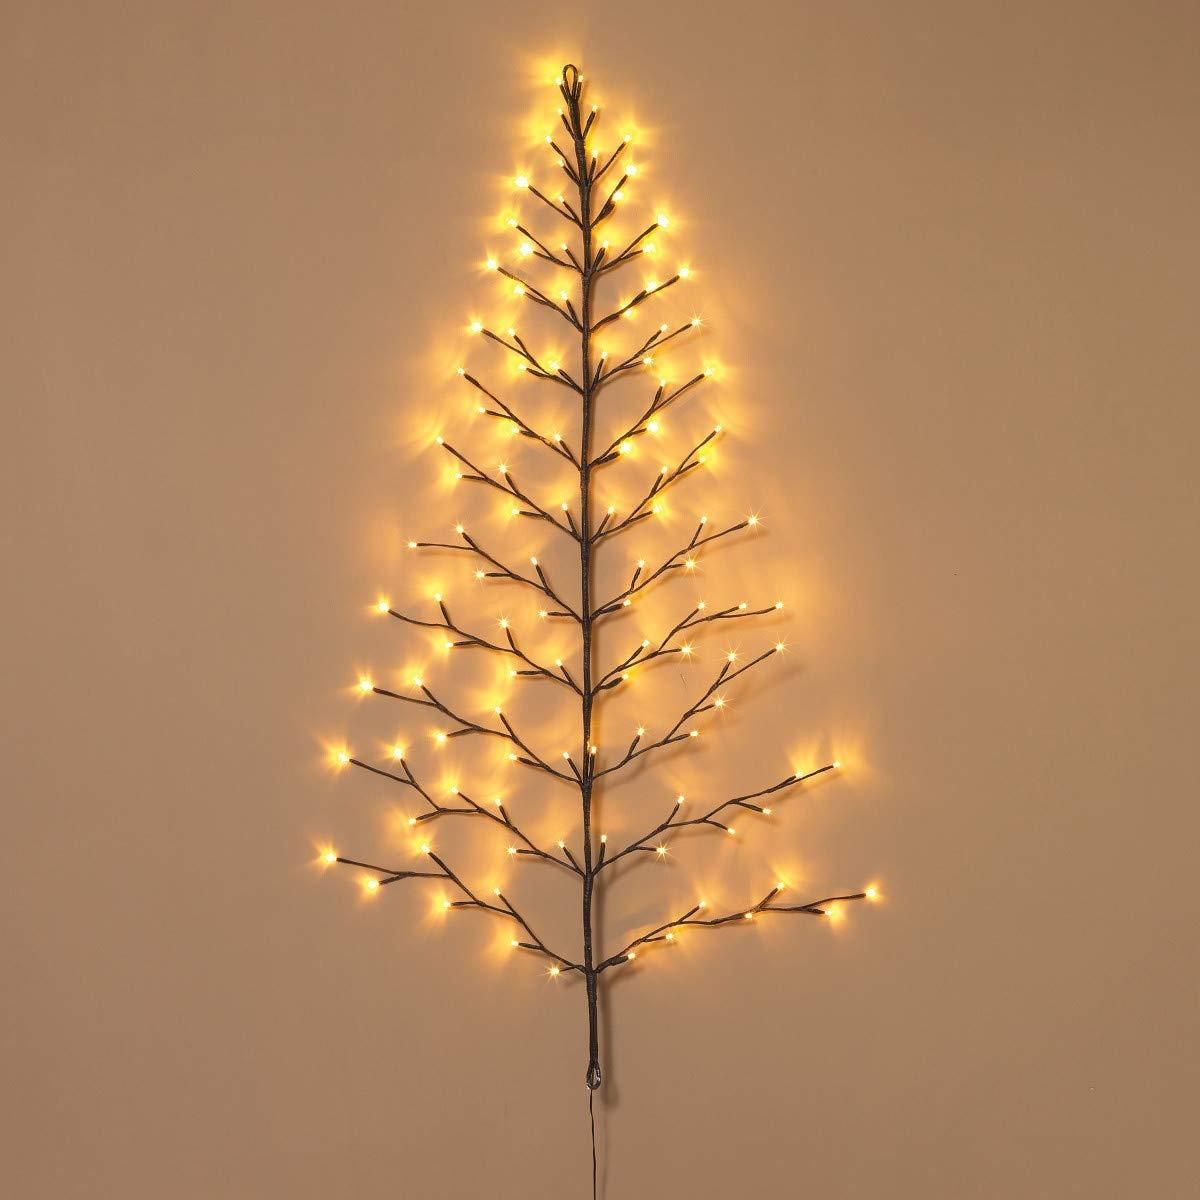 Tenwaterloo Lighted Christmas Wall Tree Indoor Outdoor Led 4 Foot High Warm White Lights Battery Operated With Timer Artificial Christmas Tree Tree Wall White Led Lights